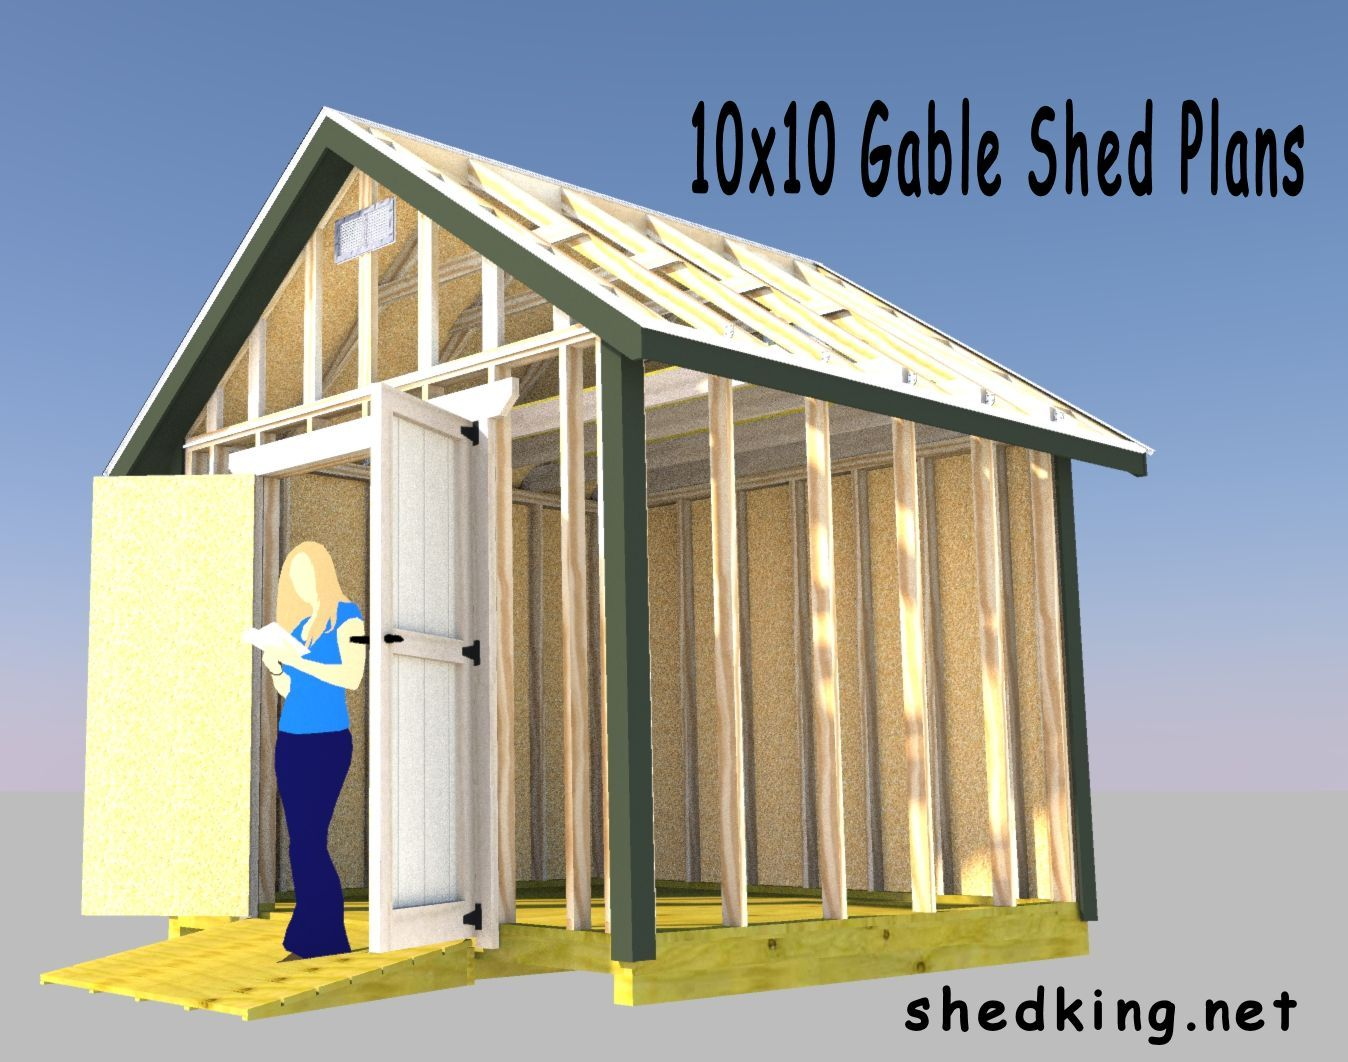 Backyard Storage Shed 10x10 Gable Shed Plans Small Shed Plans Shed Plans Backyard Storage Sheds